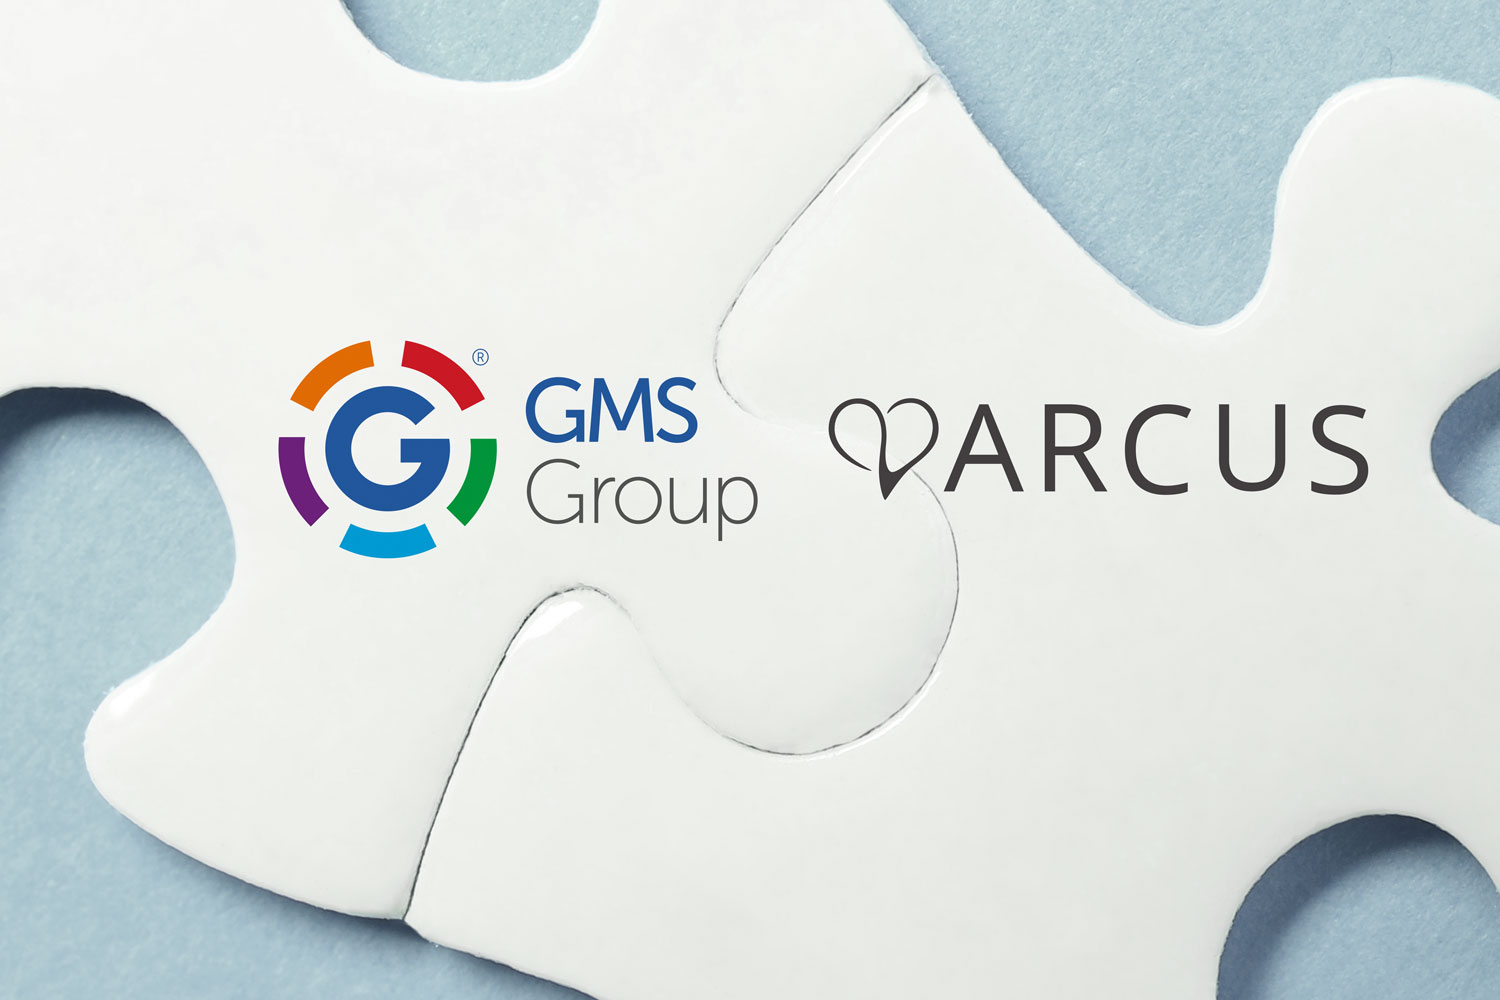 Arcus FM and GMS join forces